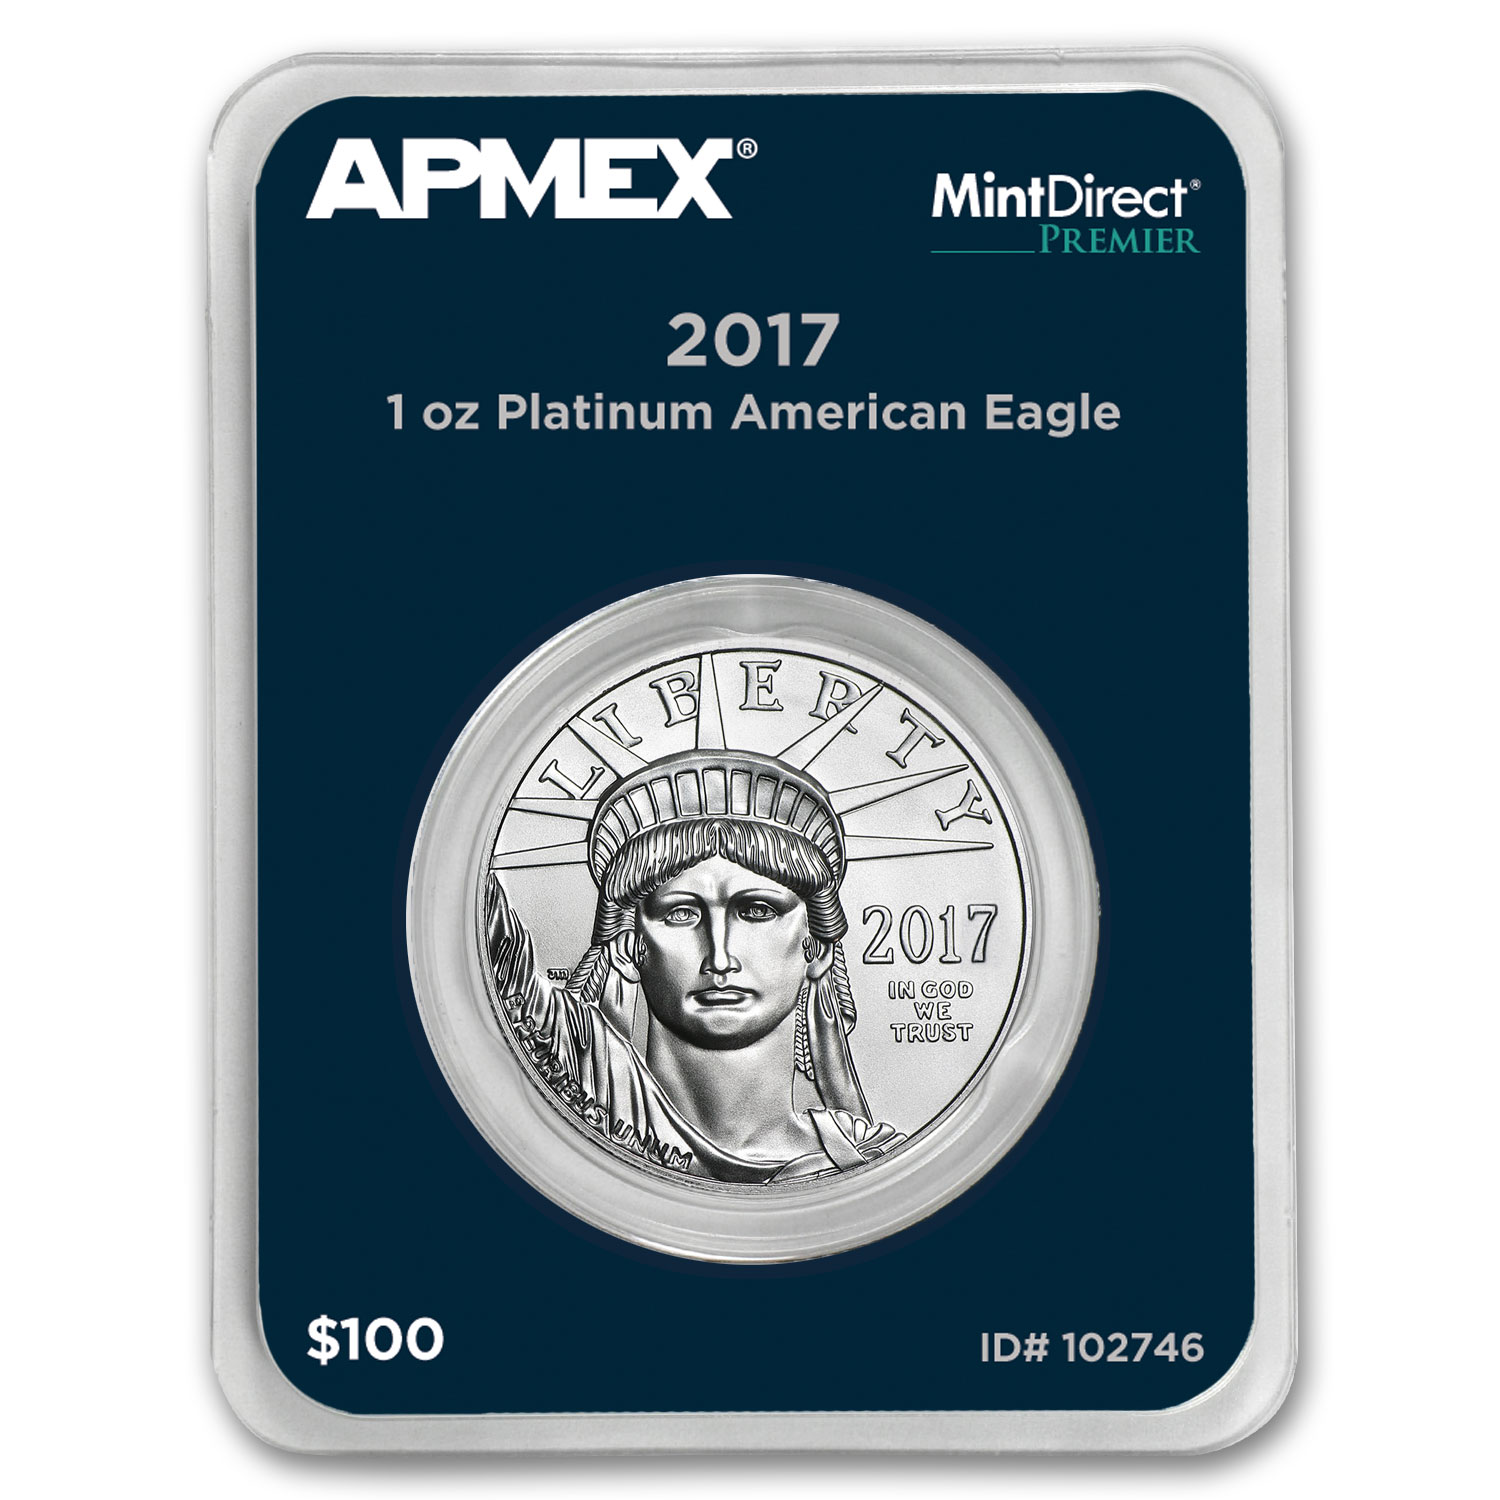 2017 1 oz Platinum American Eagle (MintDirect® Premier Single)